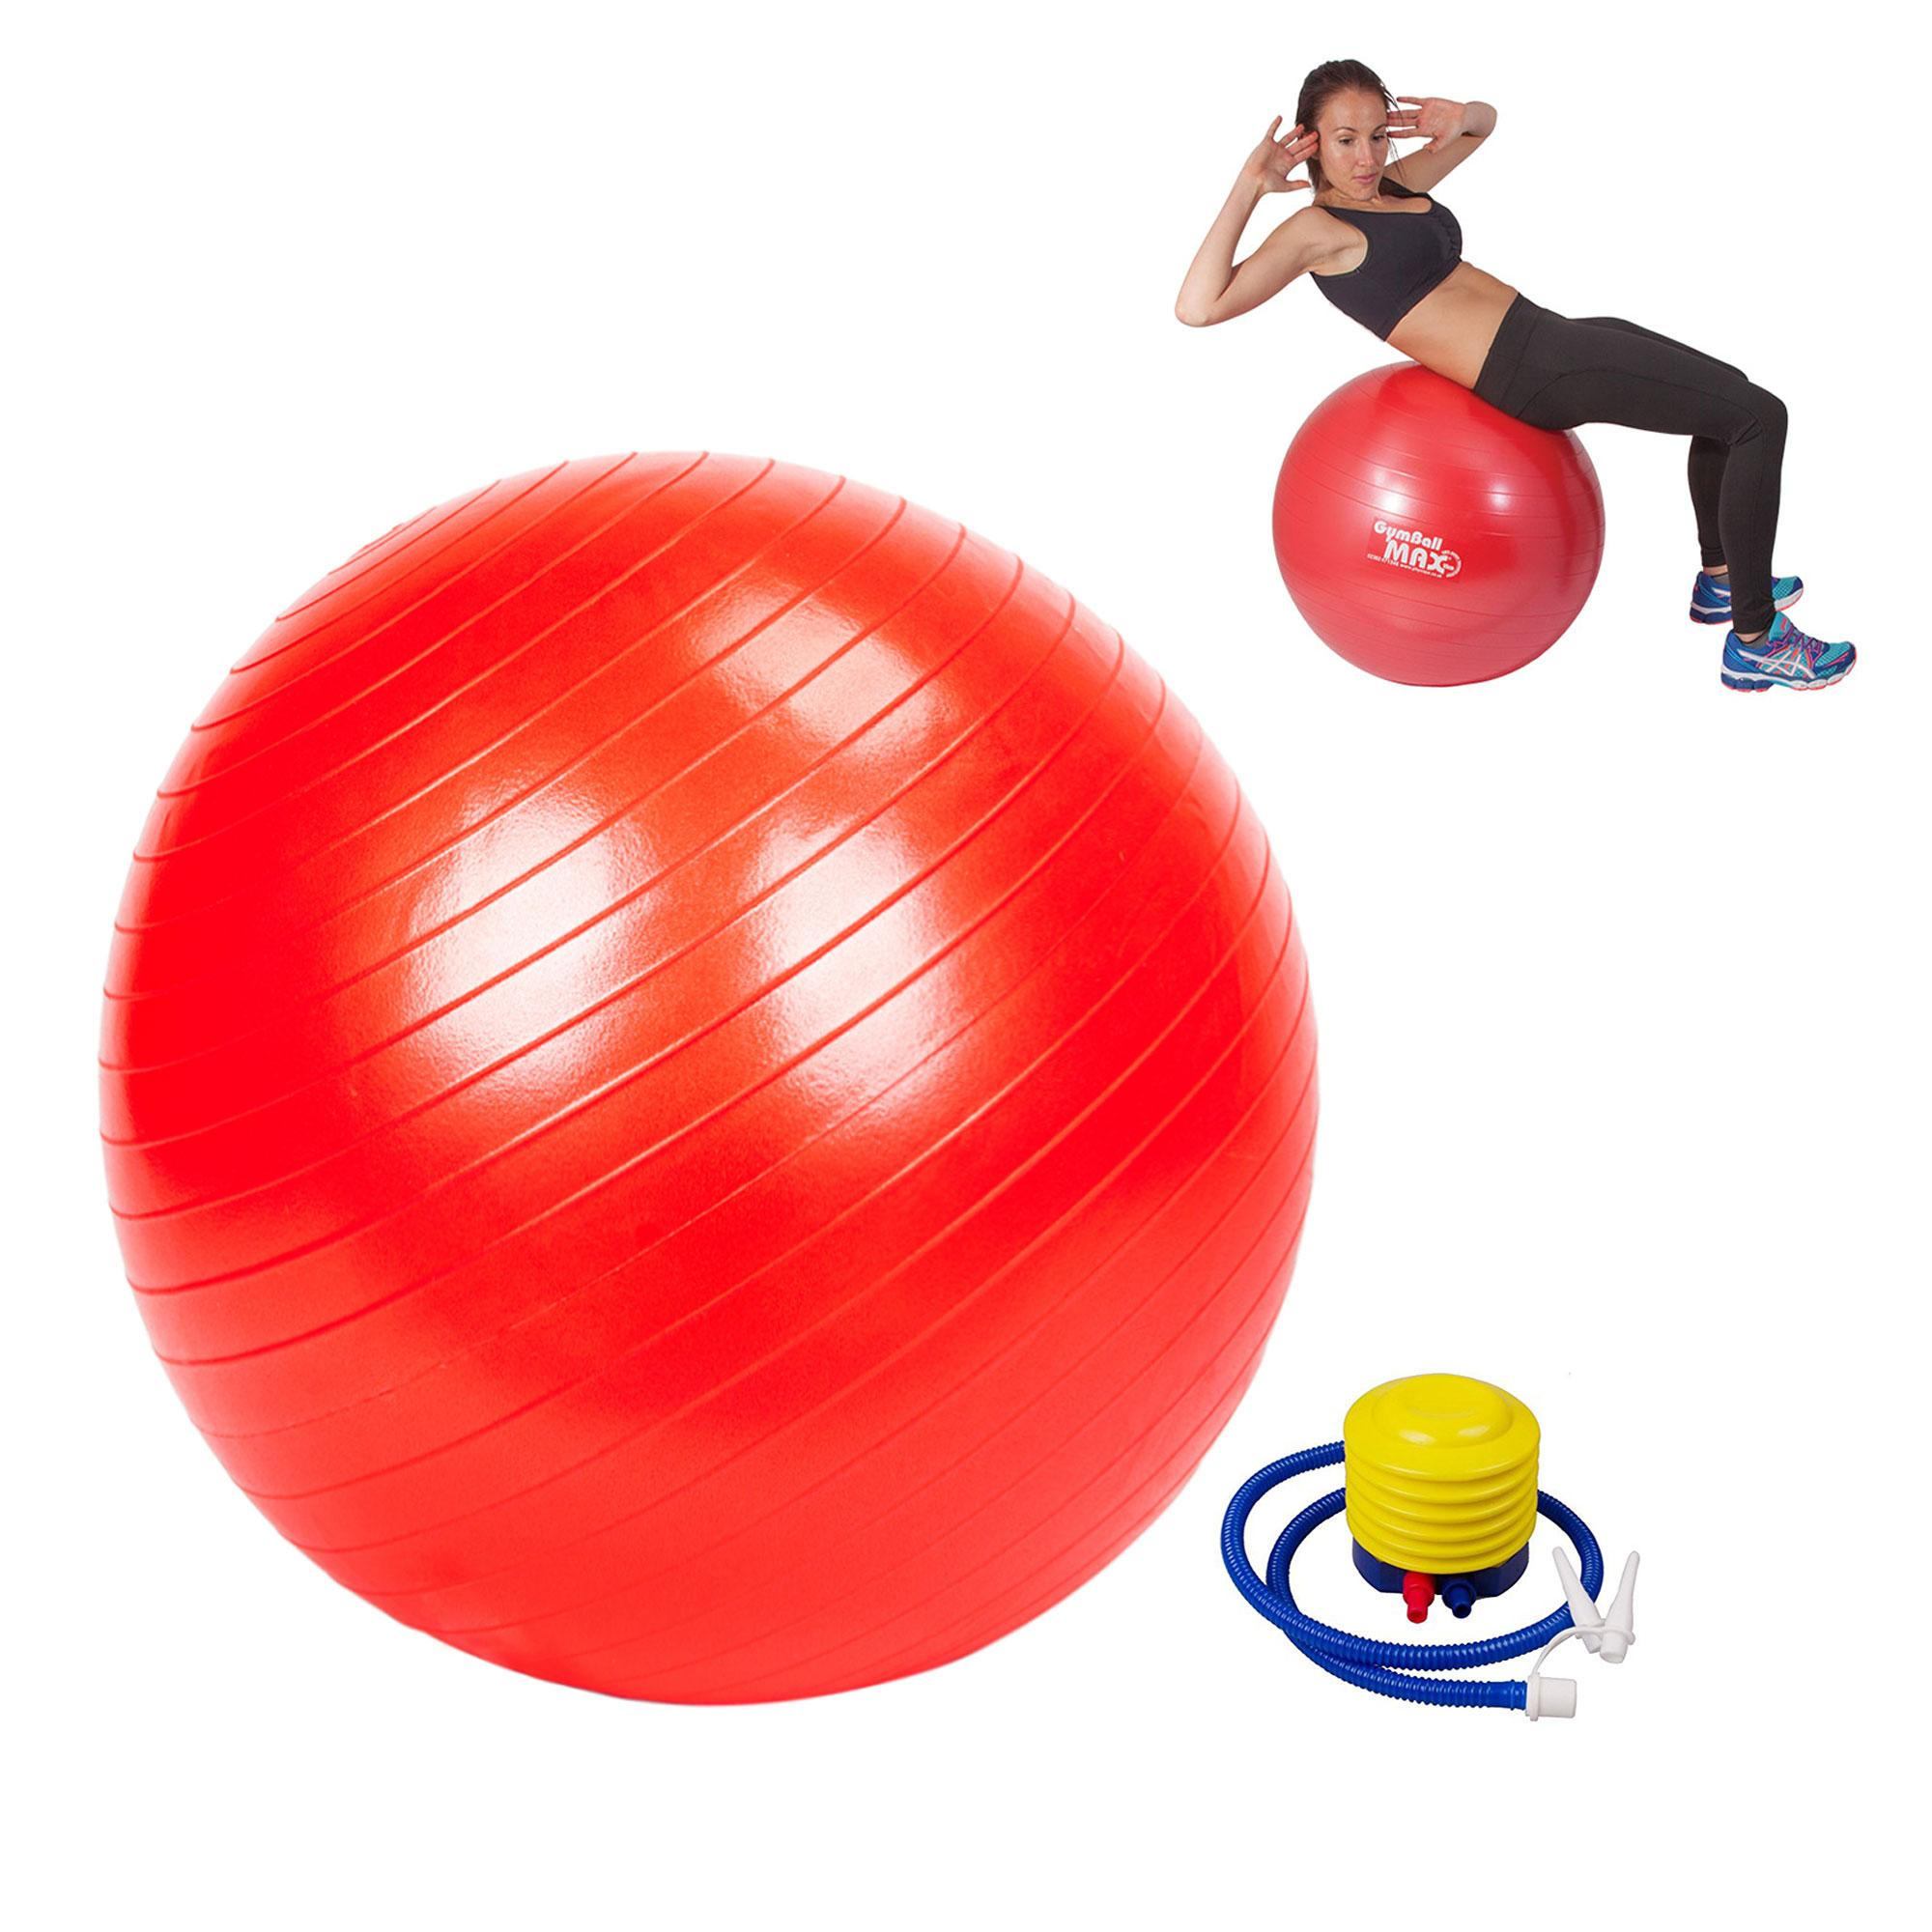 Gym Ball (red) By Gonzalez General Merchandise.